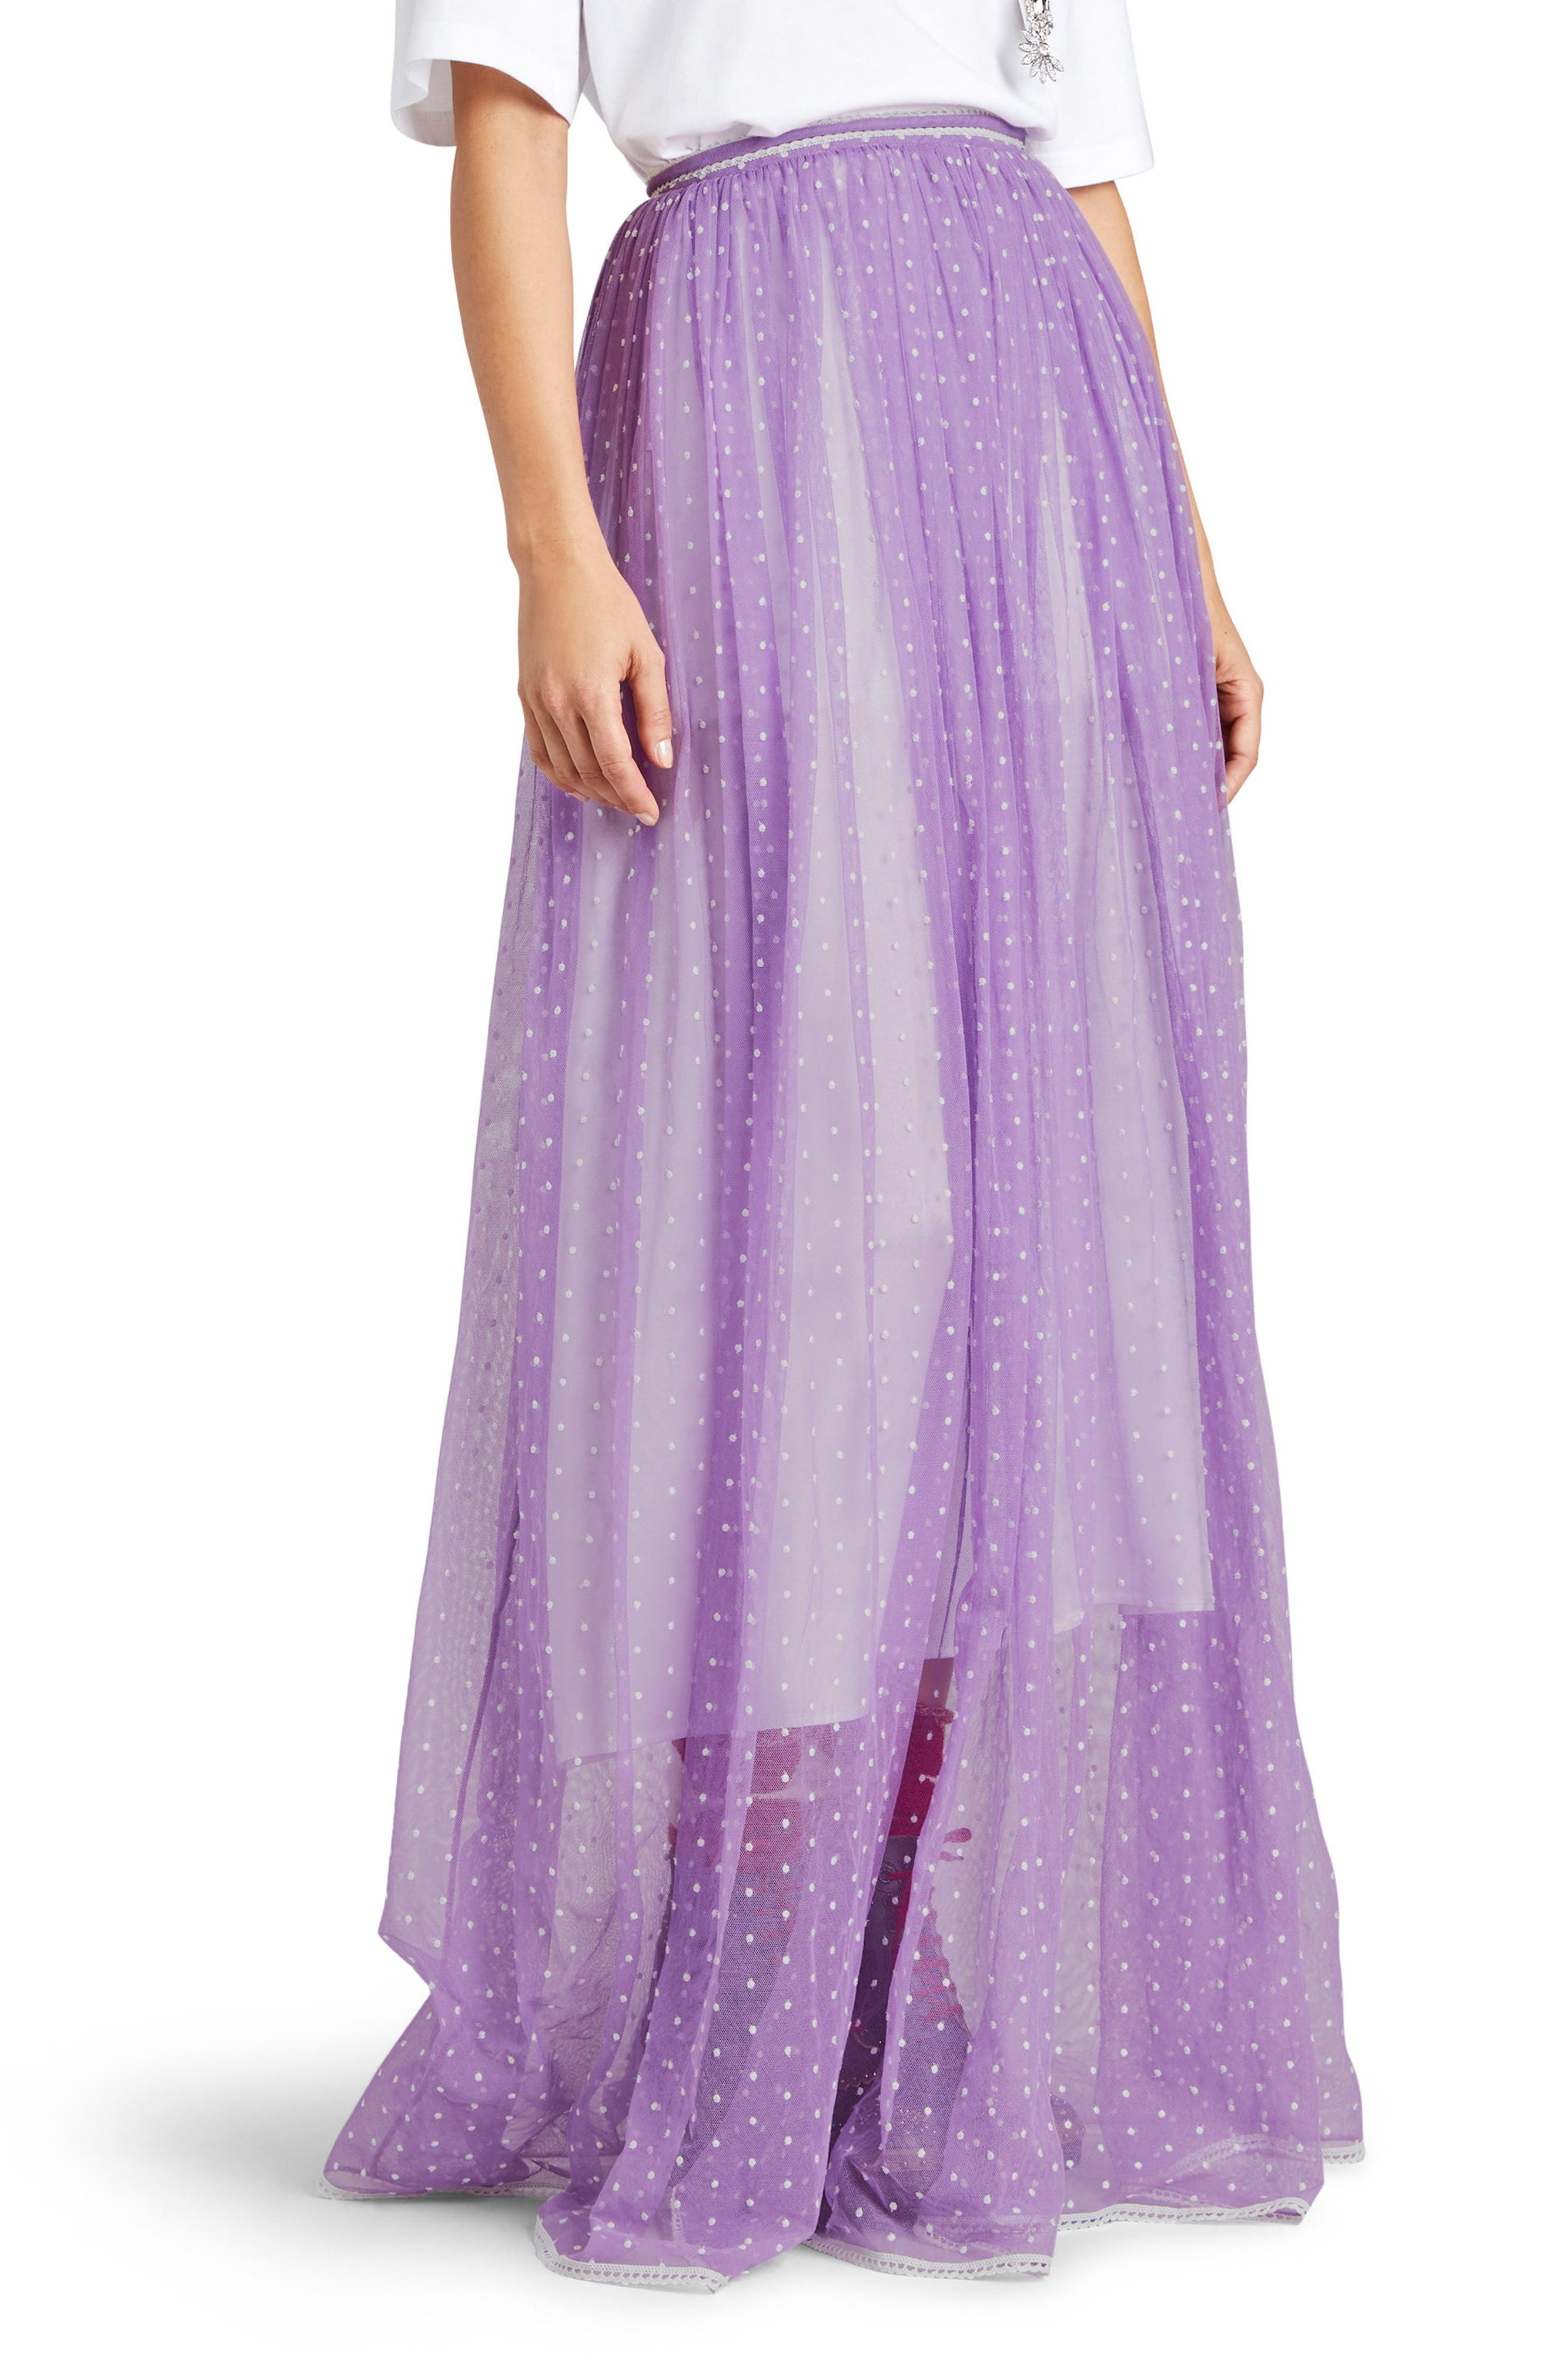 Flocked Tulle Maxi Skirt,                         Main,                         color, Lilac/ White